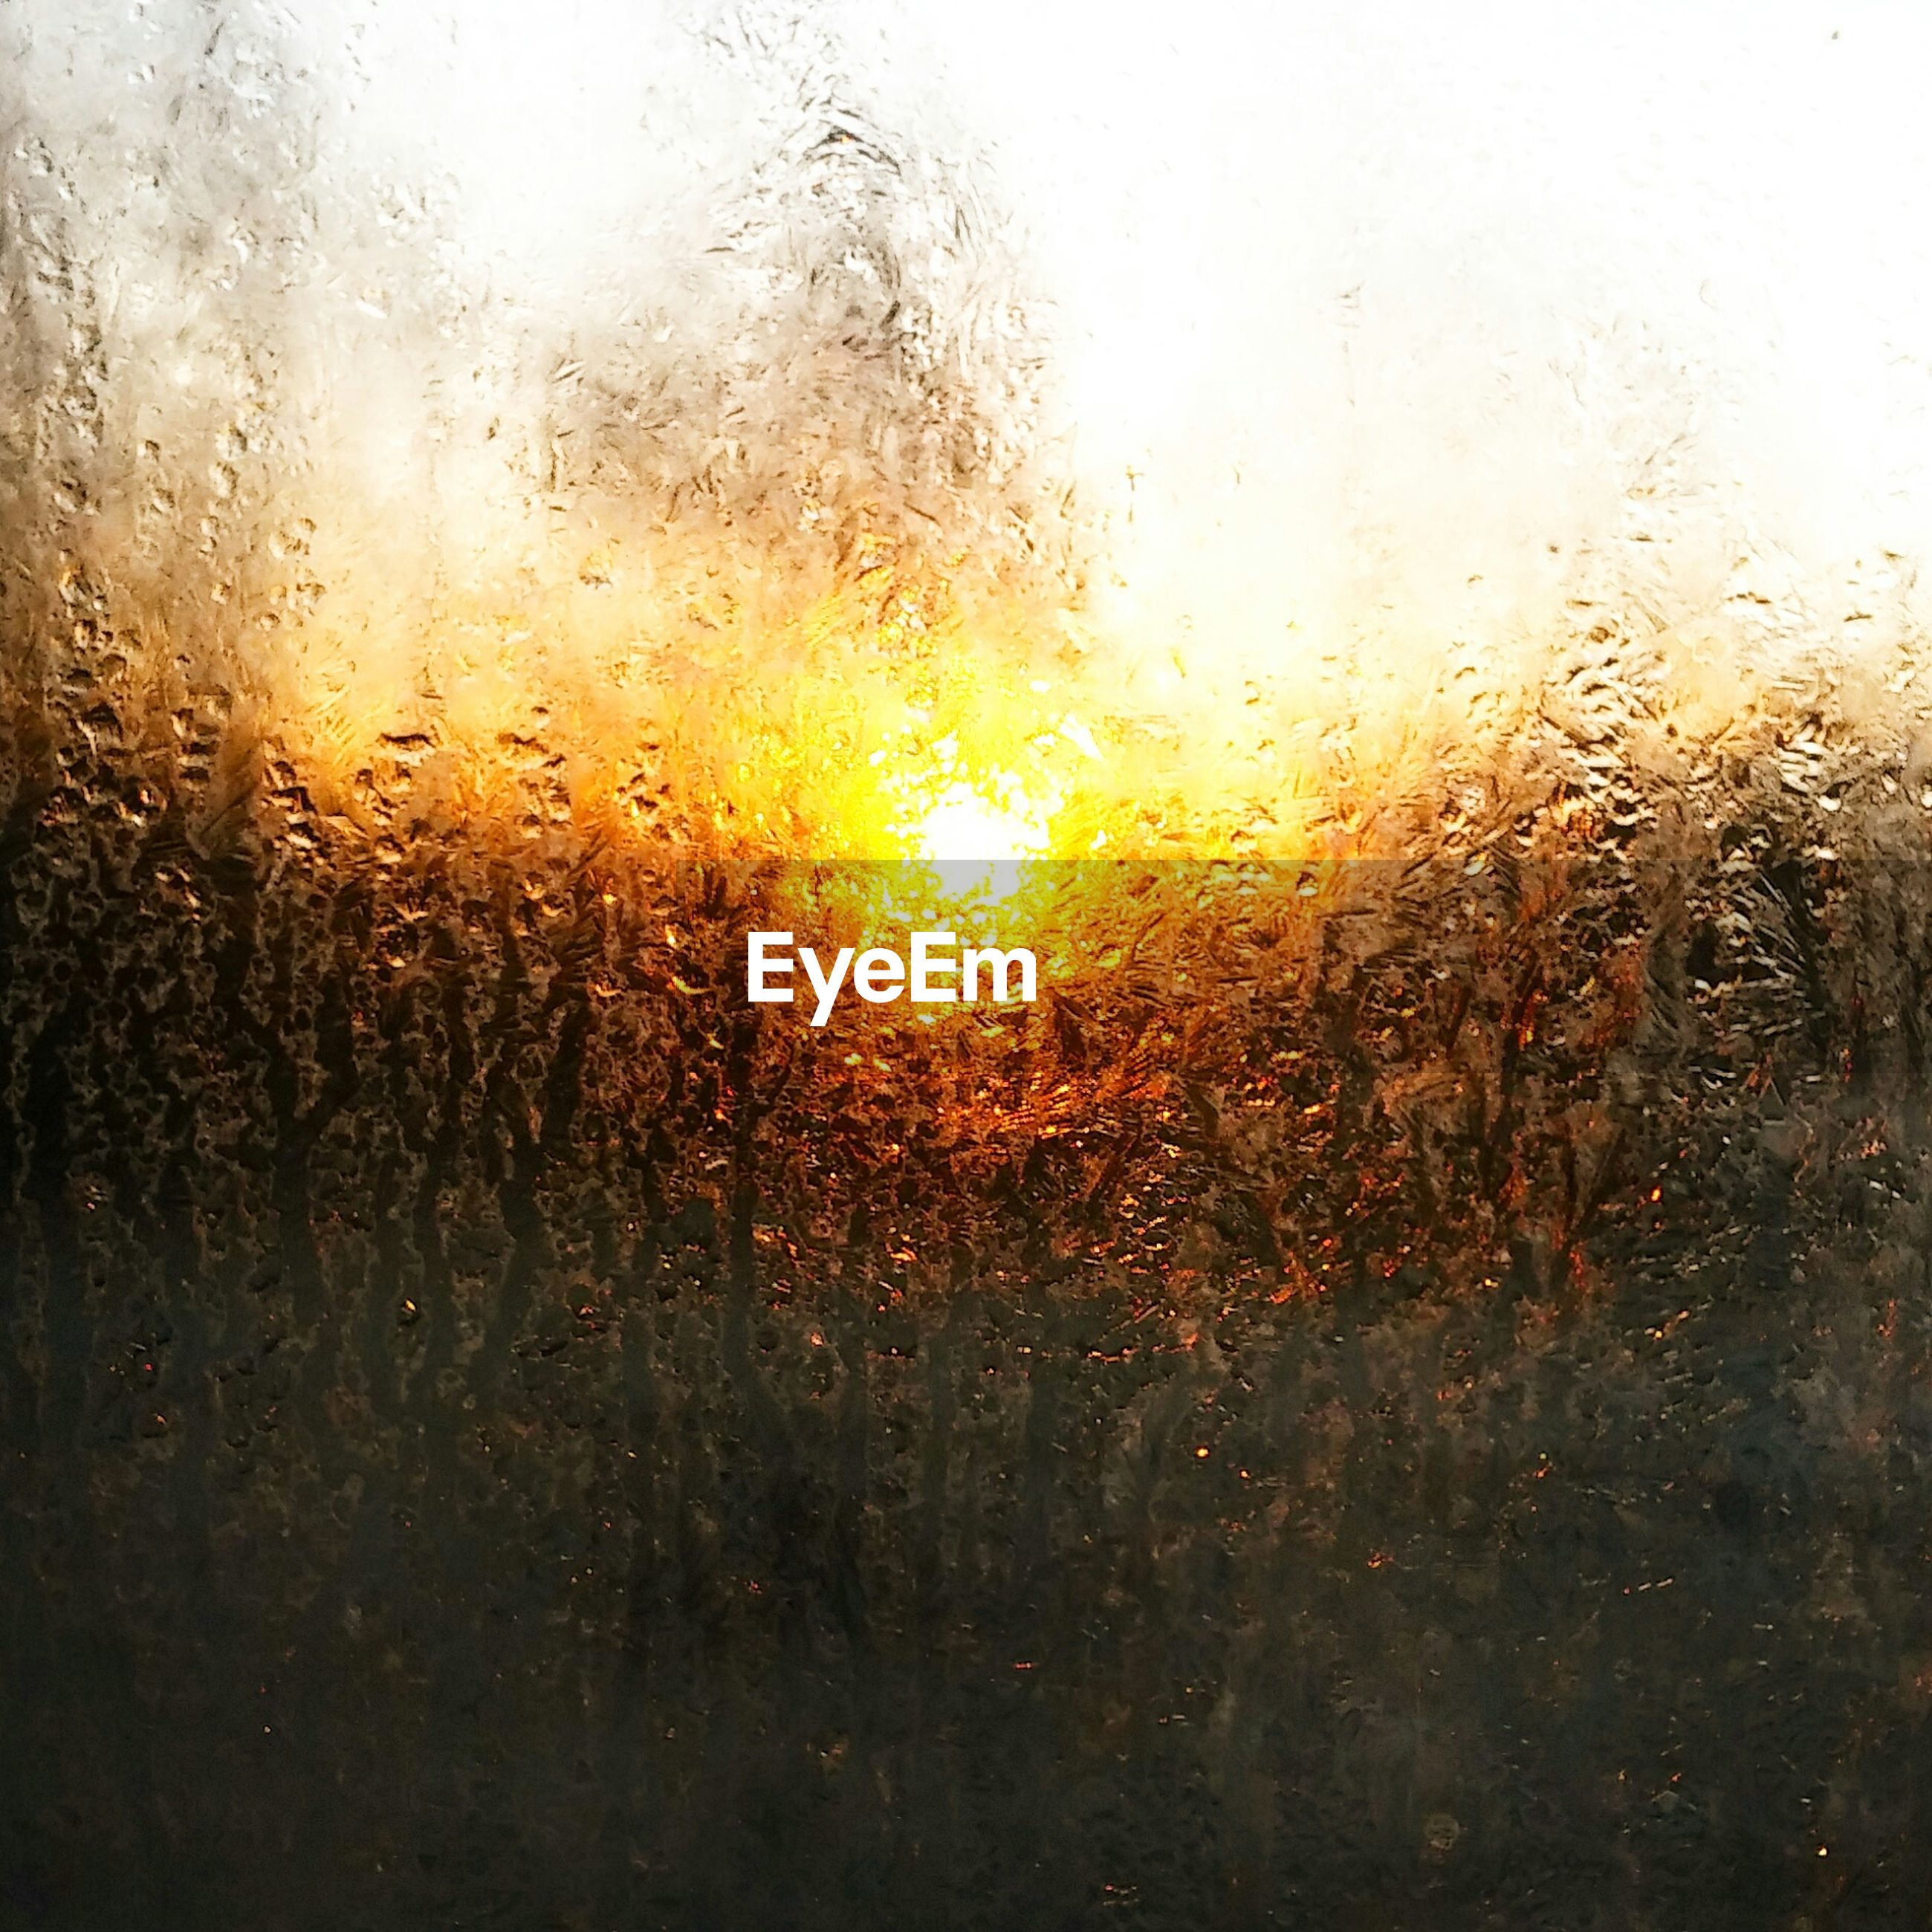 Close-up of wet glass window during sunset